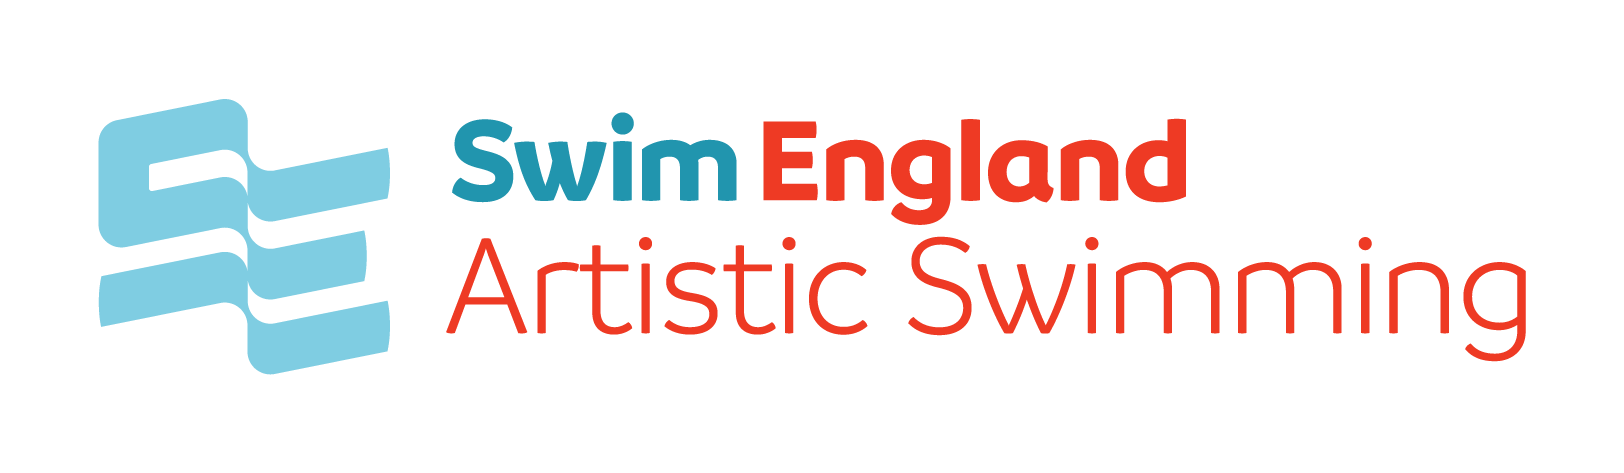 Swim England Artistic Swimming